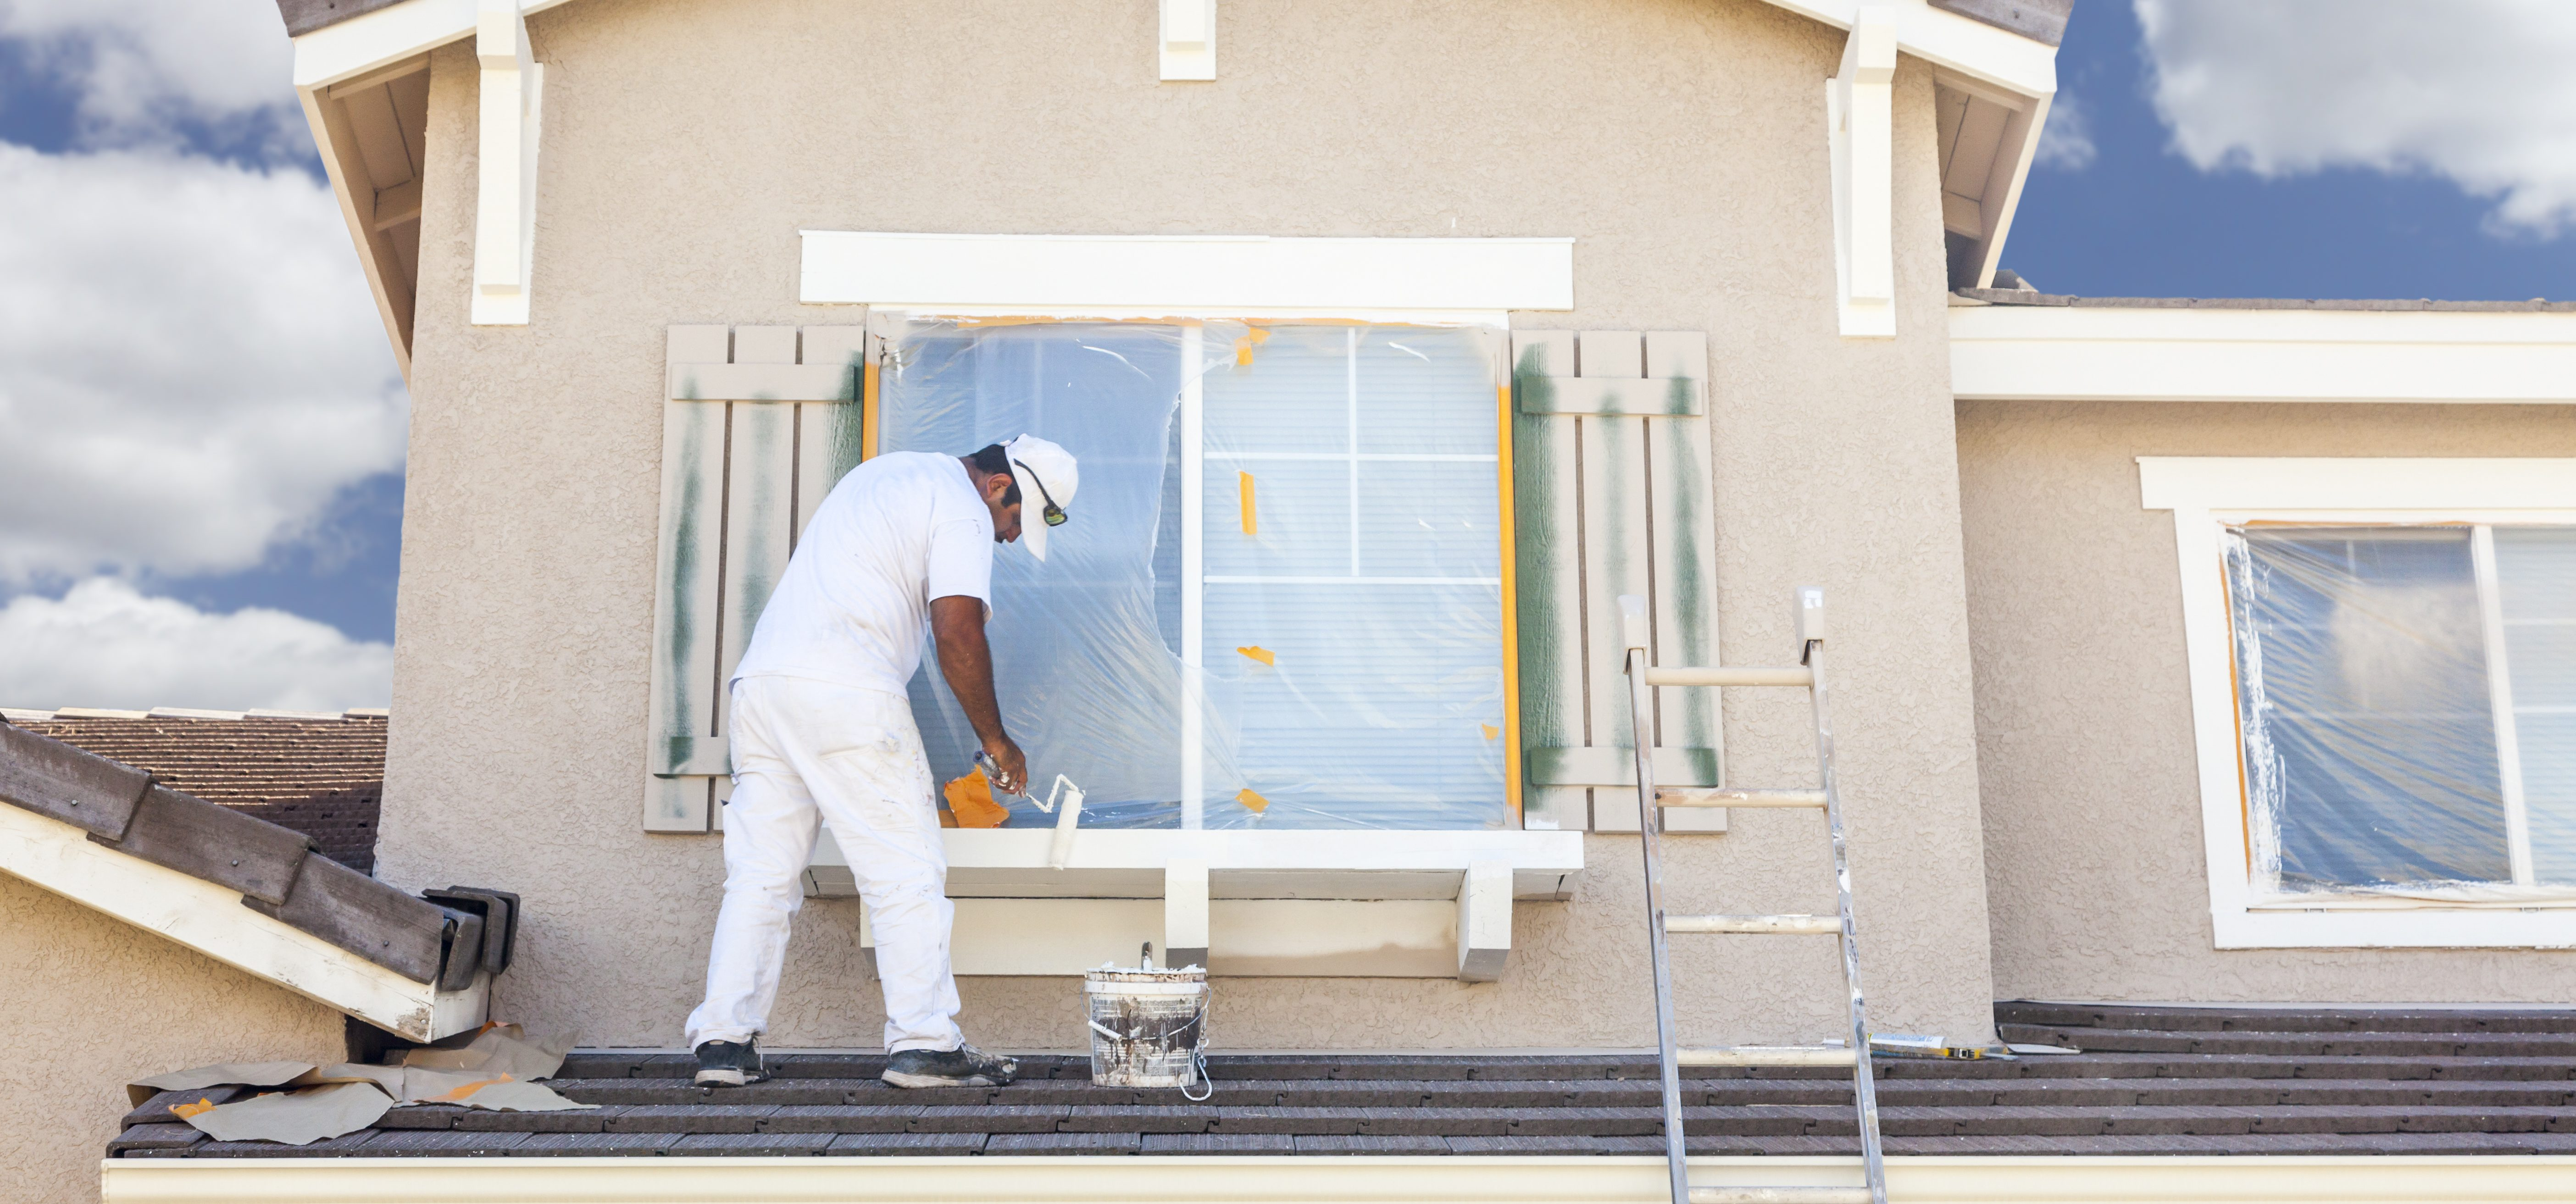 Window repair glass replacement ahwatukee foothills az for Window replacement contractor